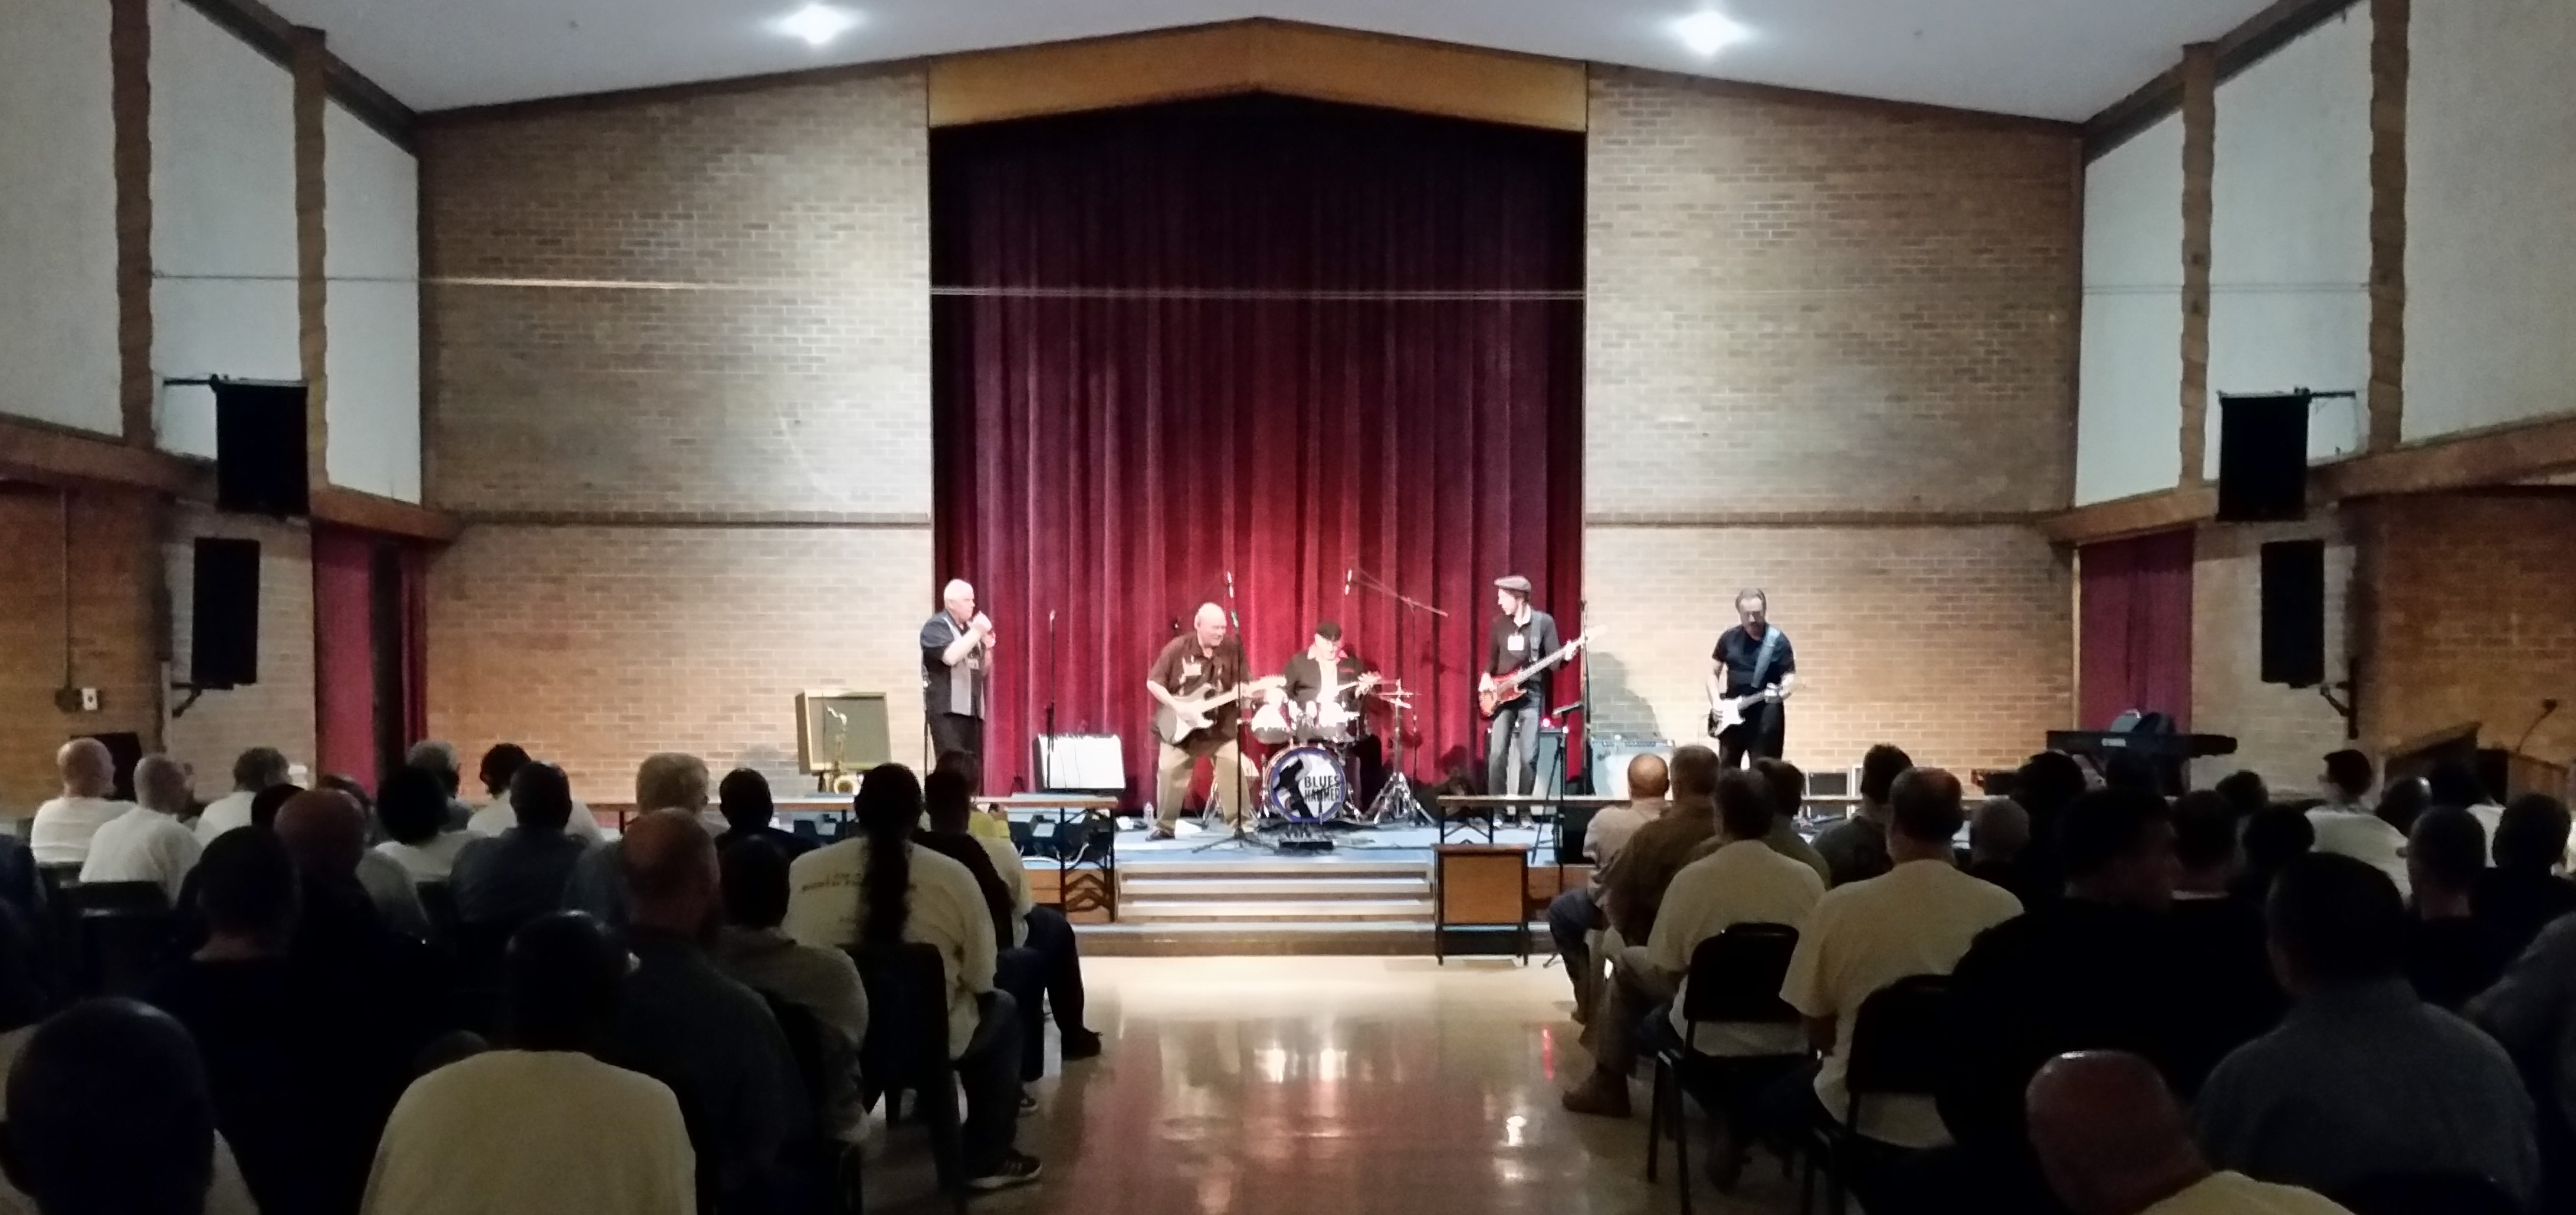 The Blues Prevail at Marion Correctional Institution